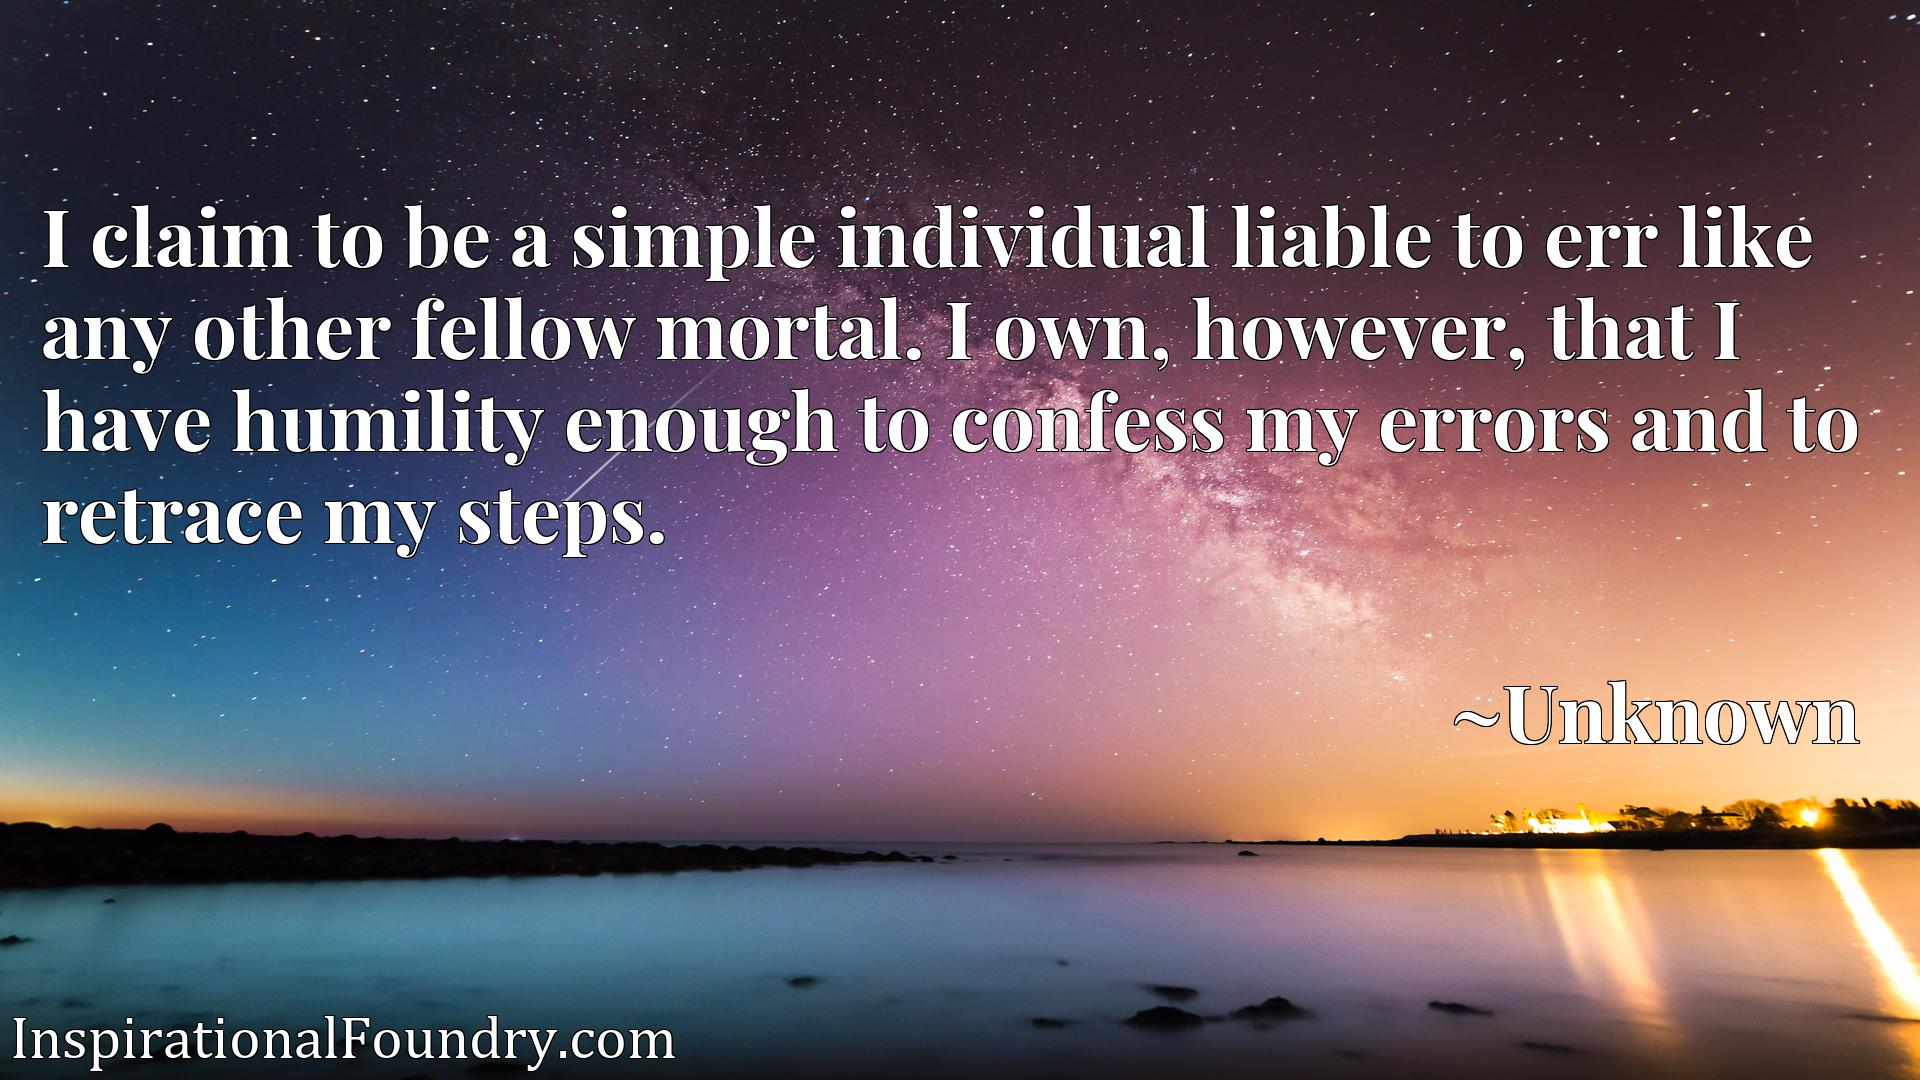 Quote Picture :I claim to be a simple individual liable to err like any other fellow mortal. I own, however, that I have humility enough to confess my errors and to retrace my steps.